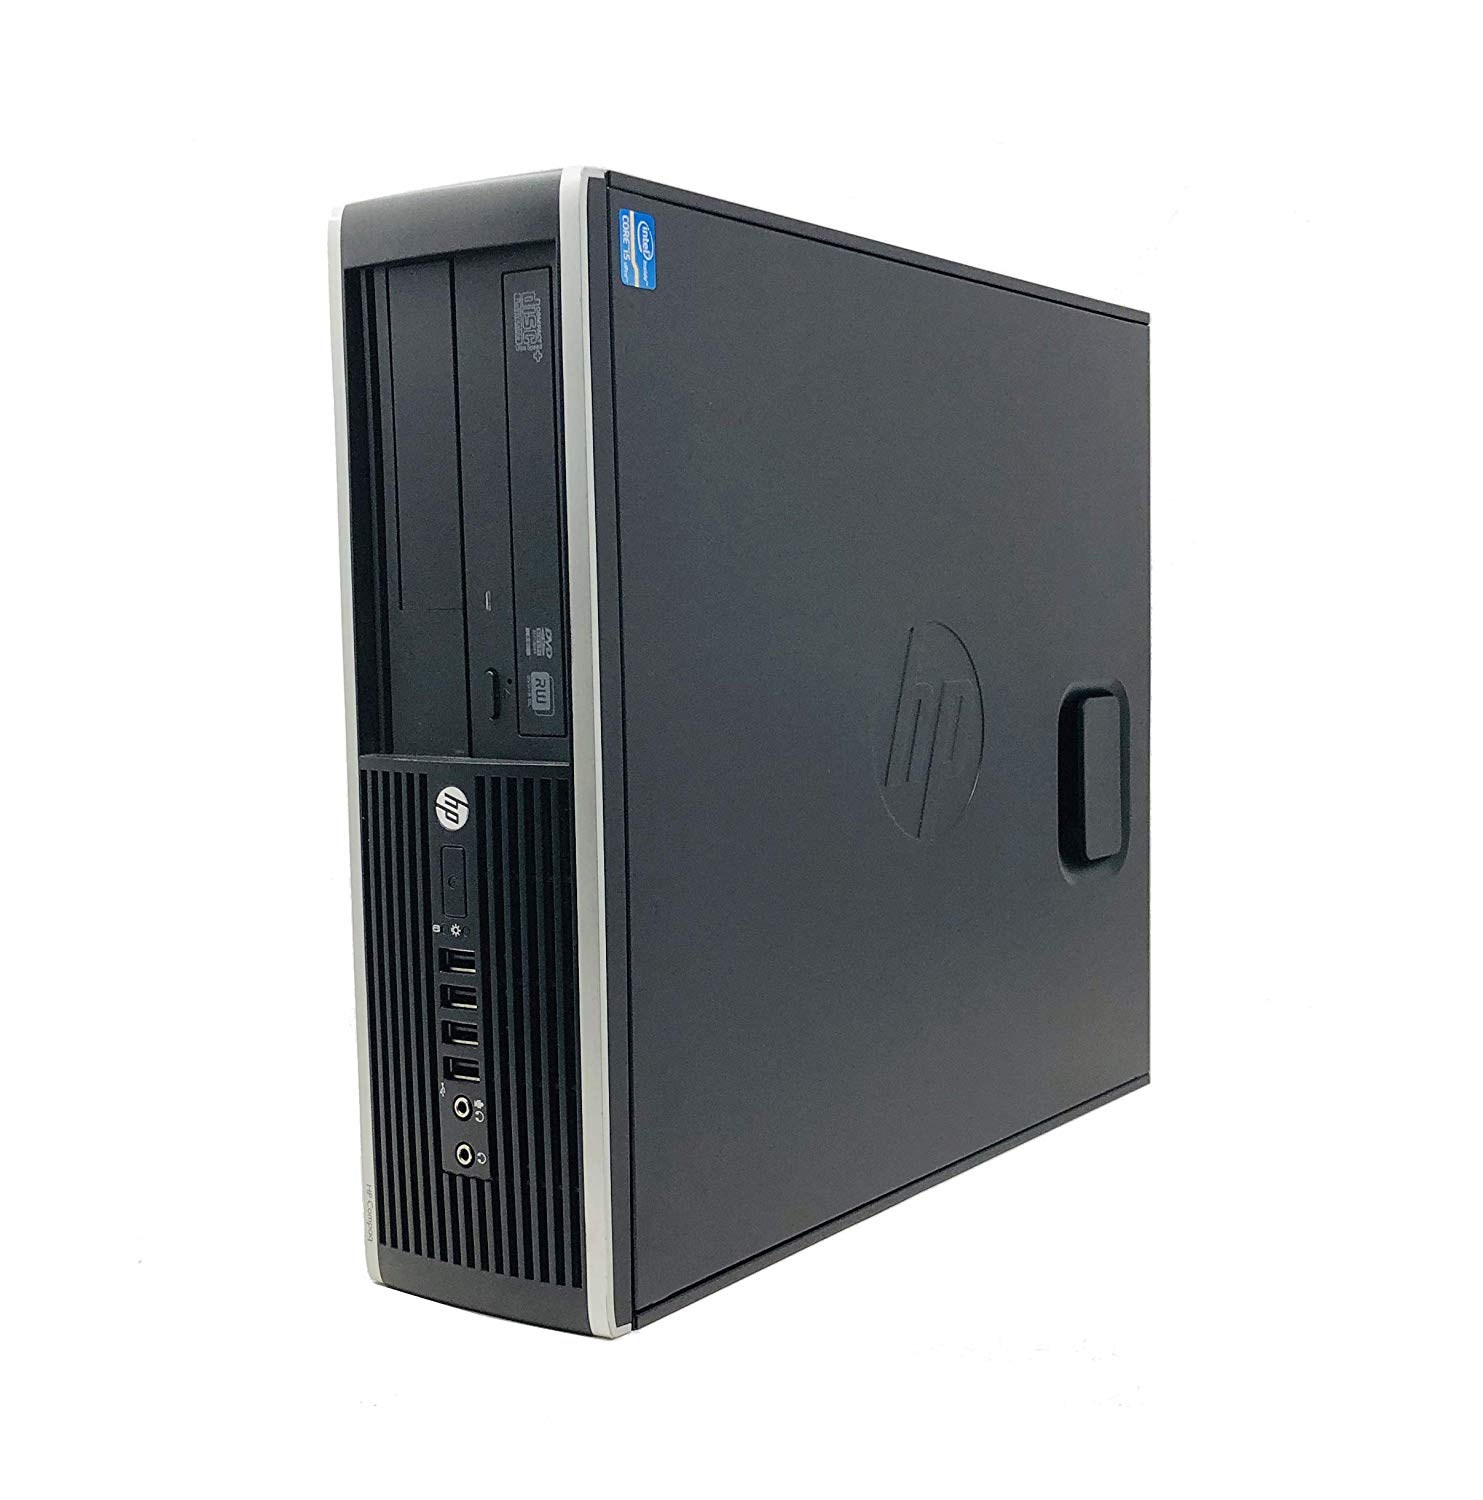 Hp Elite 8200 - Ordenador De Sobremesa (Intel  I5-2400,  8GB De RAM, Disco SSD De 480GB , Windows 10 PRO ) - (Reacondicionado)